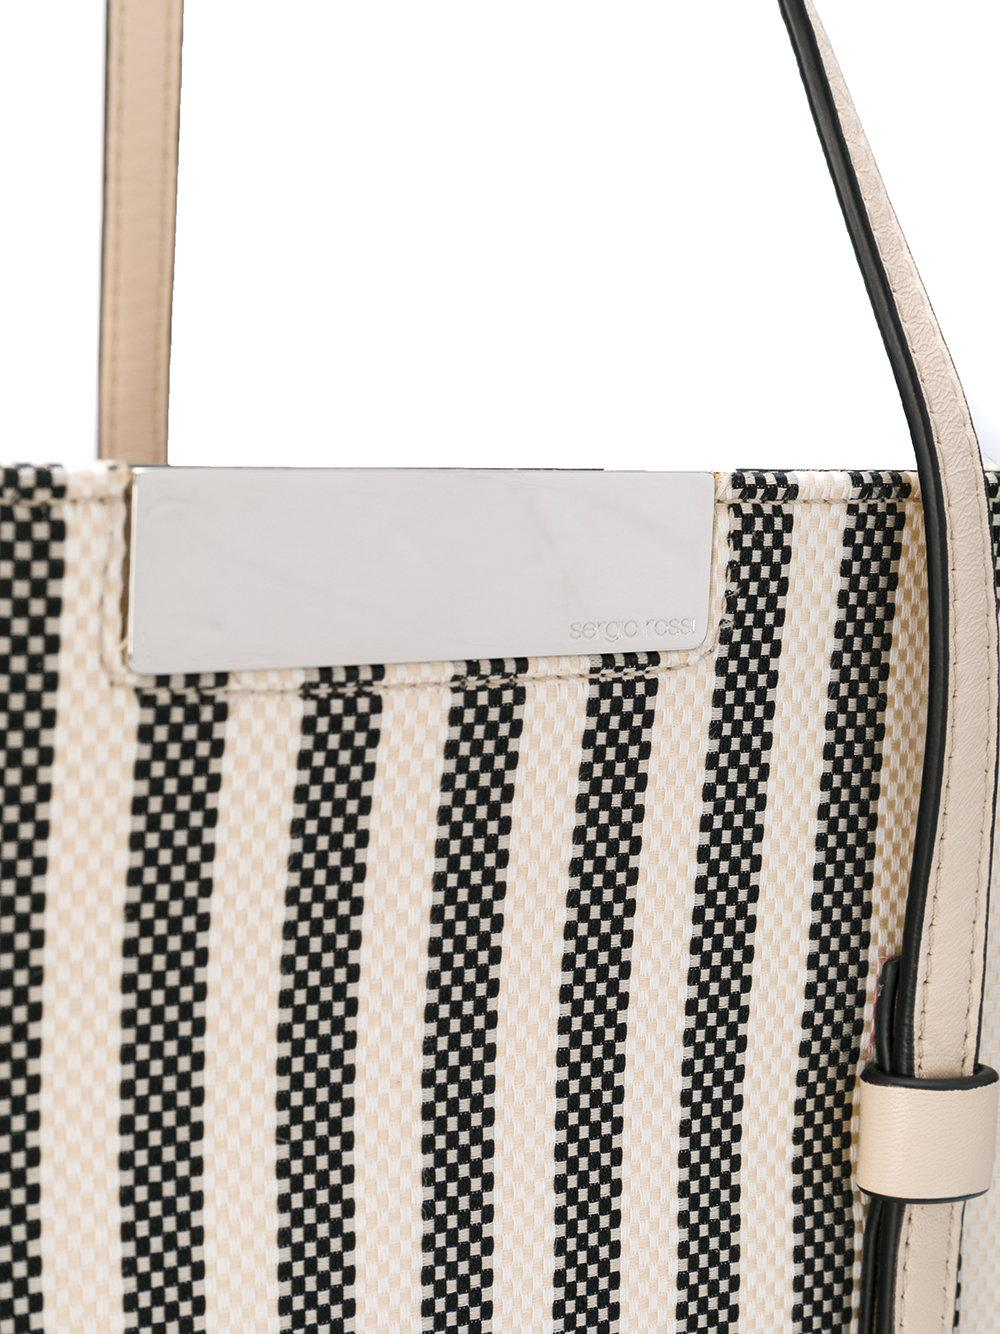 Sergio Rossi striped tote - Nude & Neutrals PeOnzXG